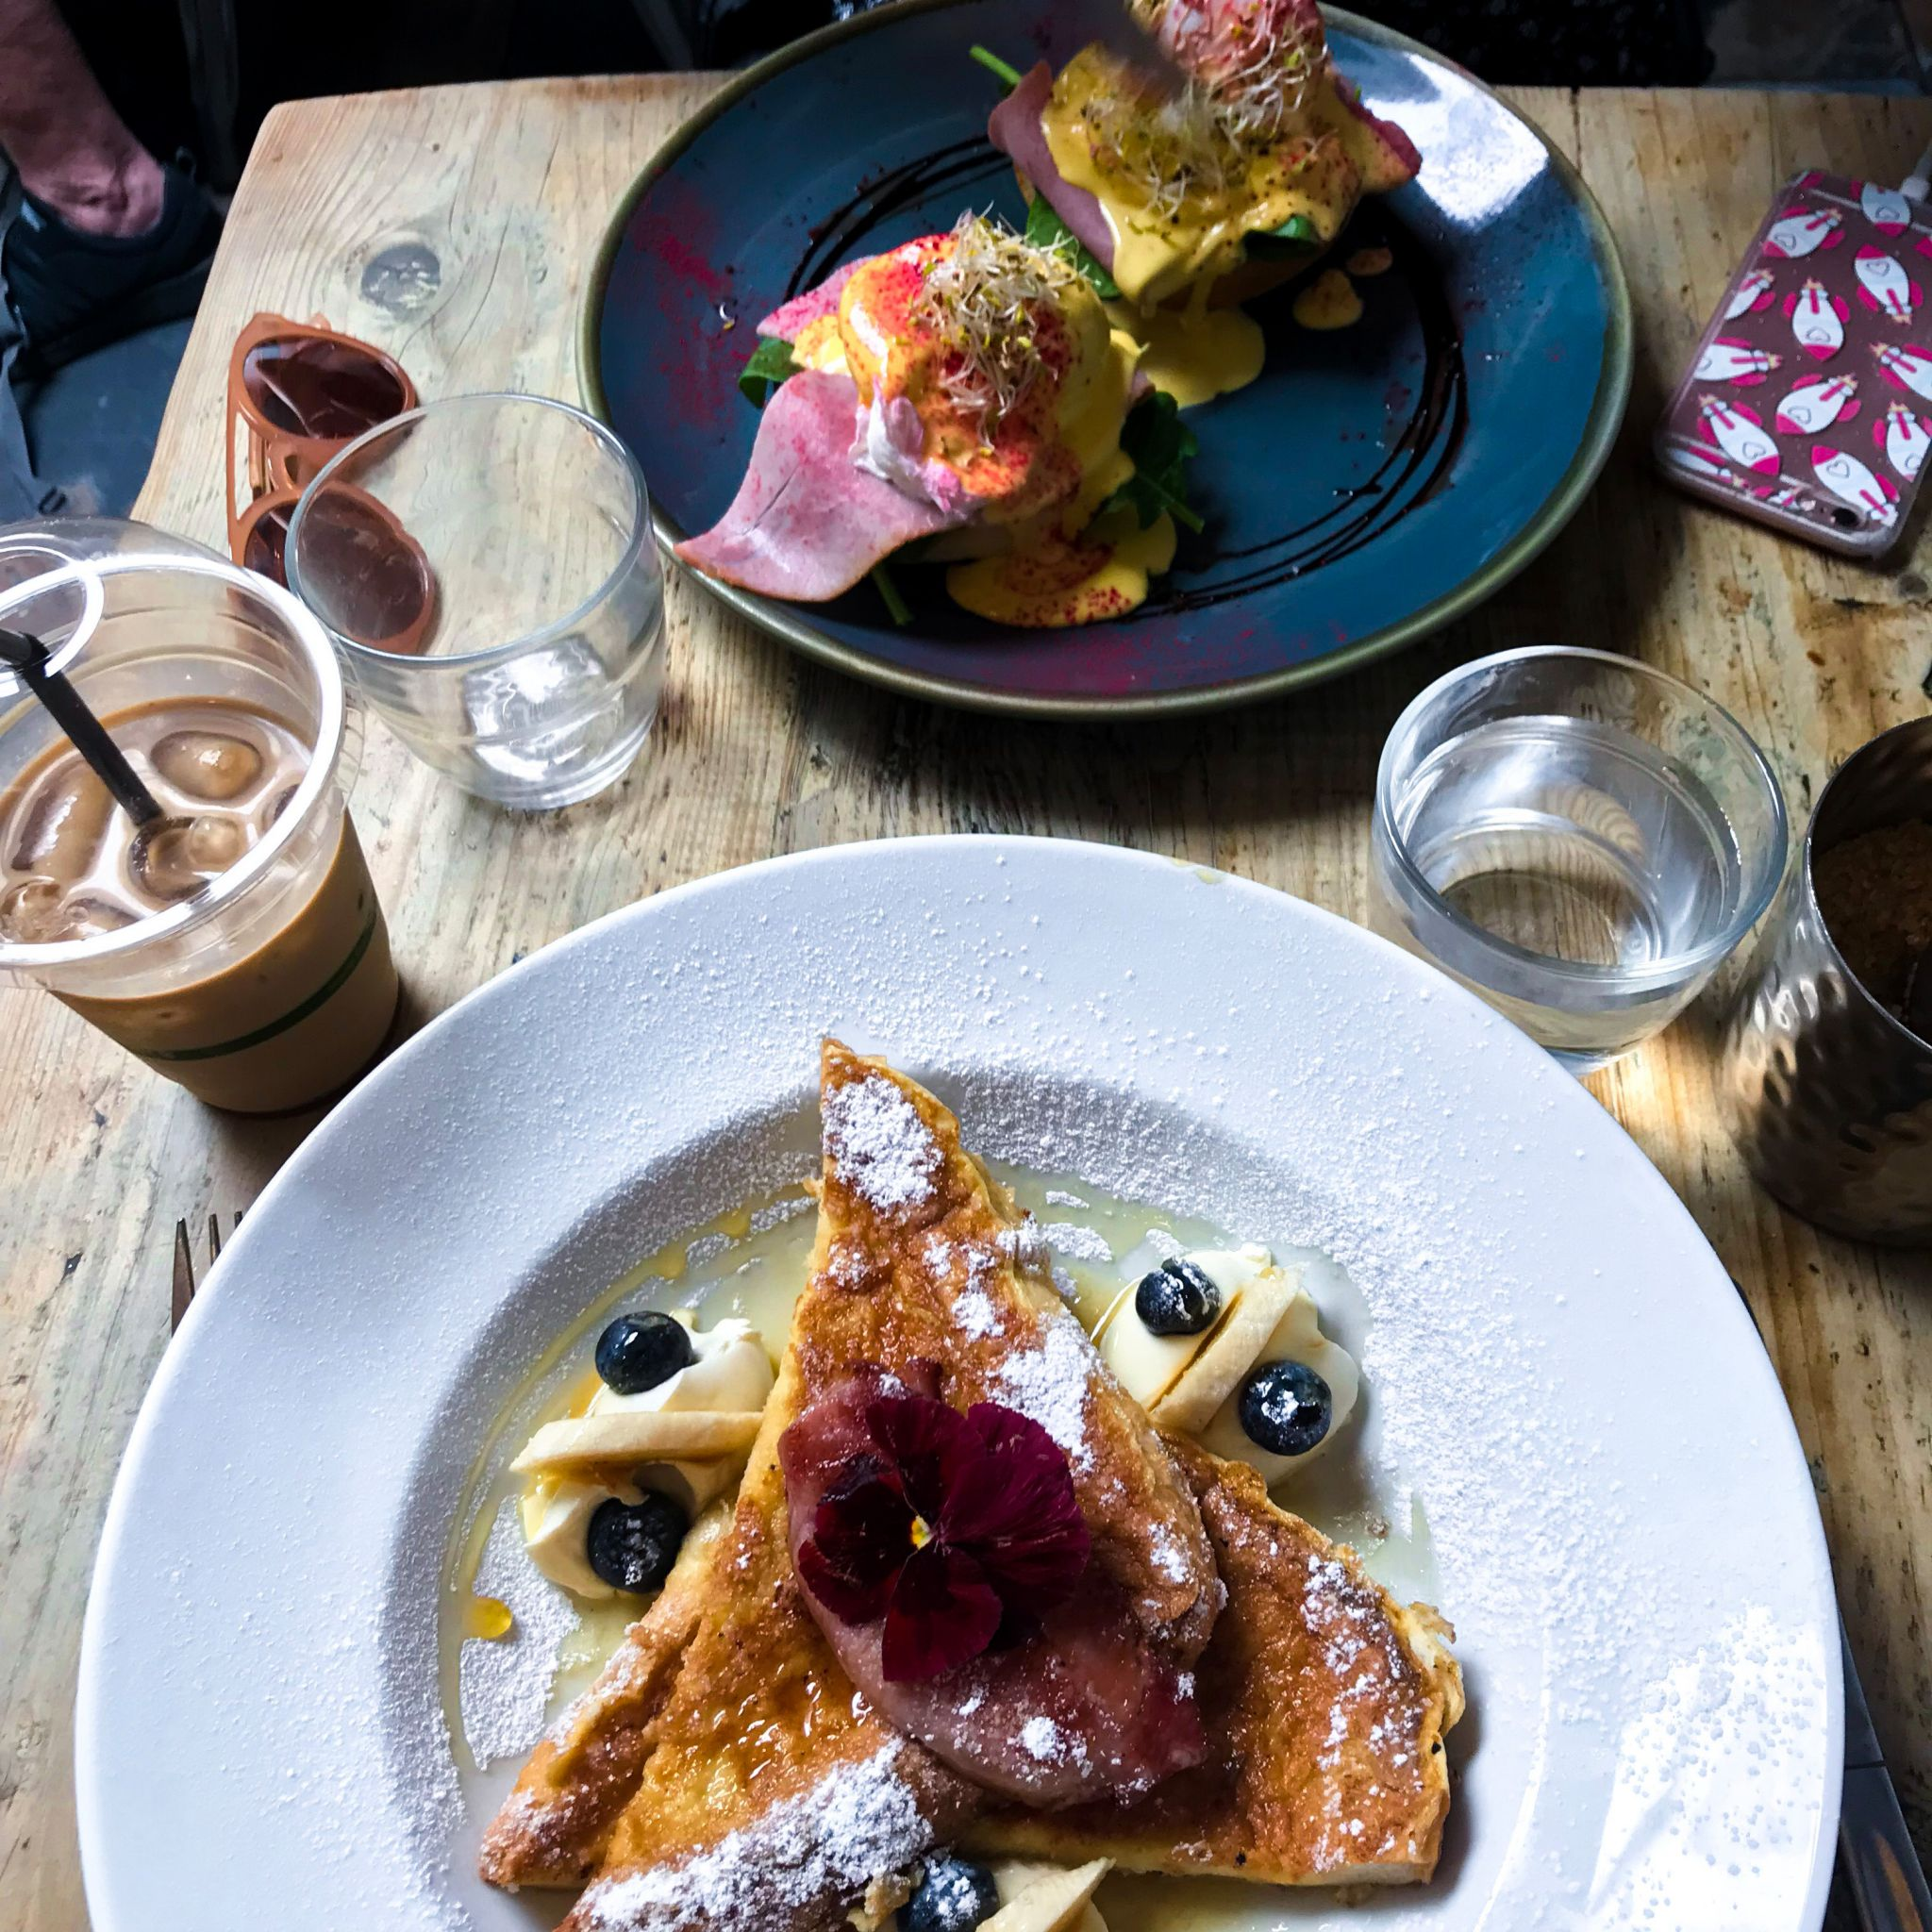 yasmin stefanie jenni roberts brighton hove brunch cafe coho french toast eggs benedict